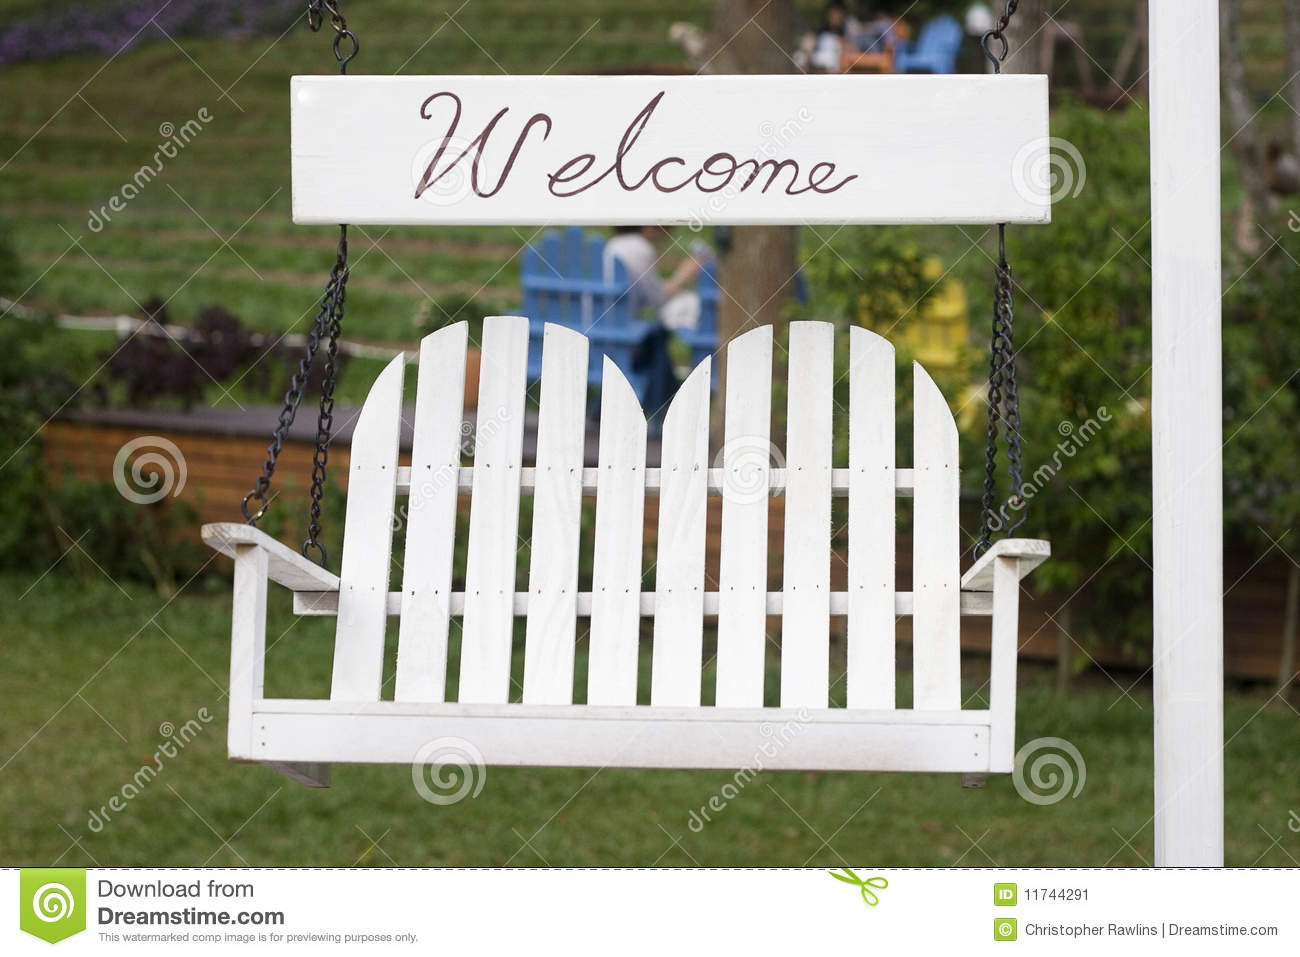 Welcome, Come in, Come in!